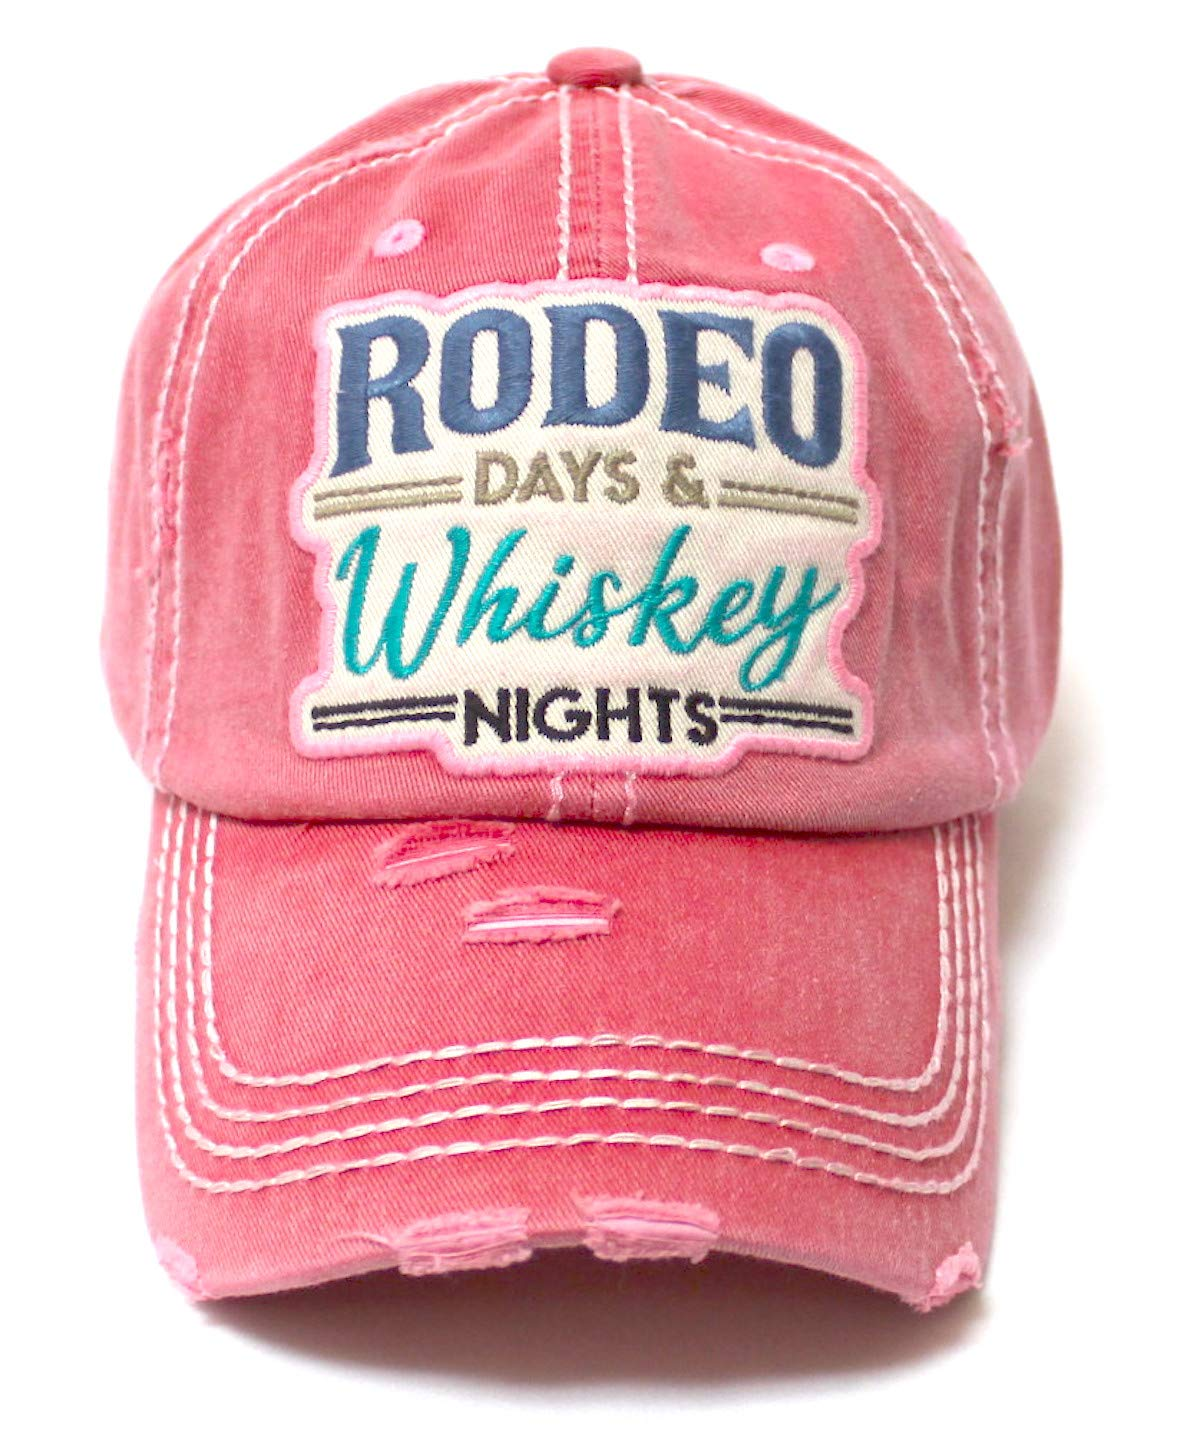 Rodeo Days Whiskey Nights Baseball Cap - Distressed Hats for Women - Summer Style Accessory in Rose Pink Love - Caps 'N Vintage